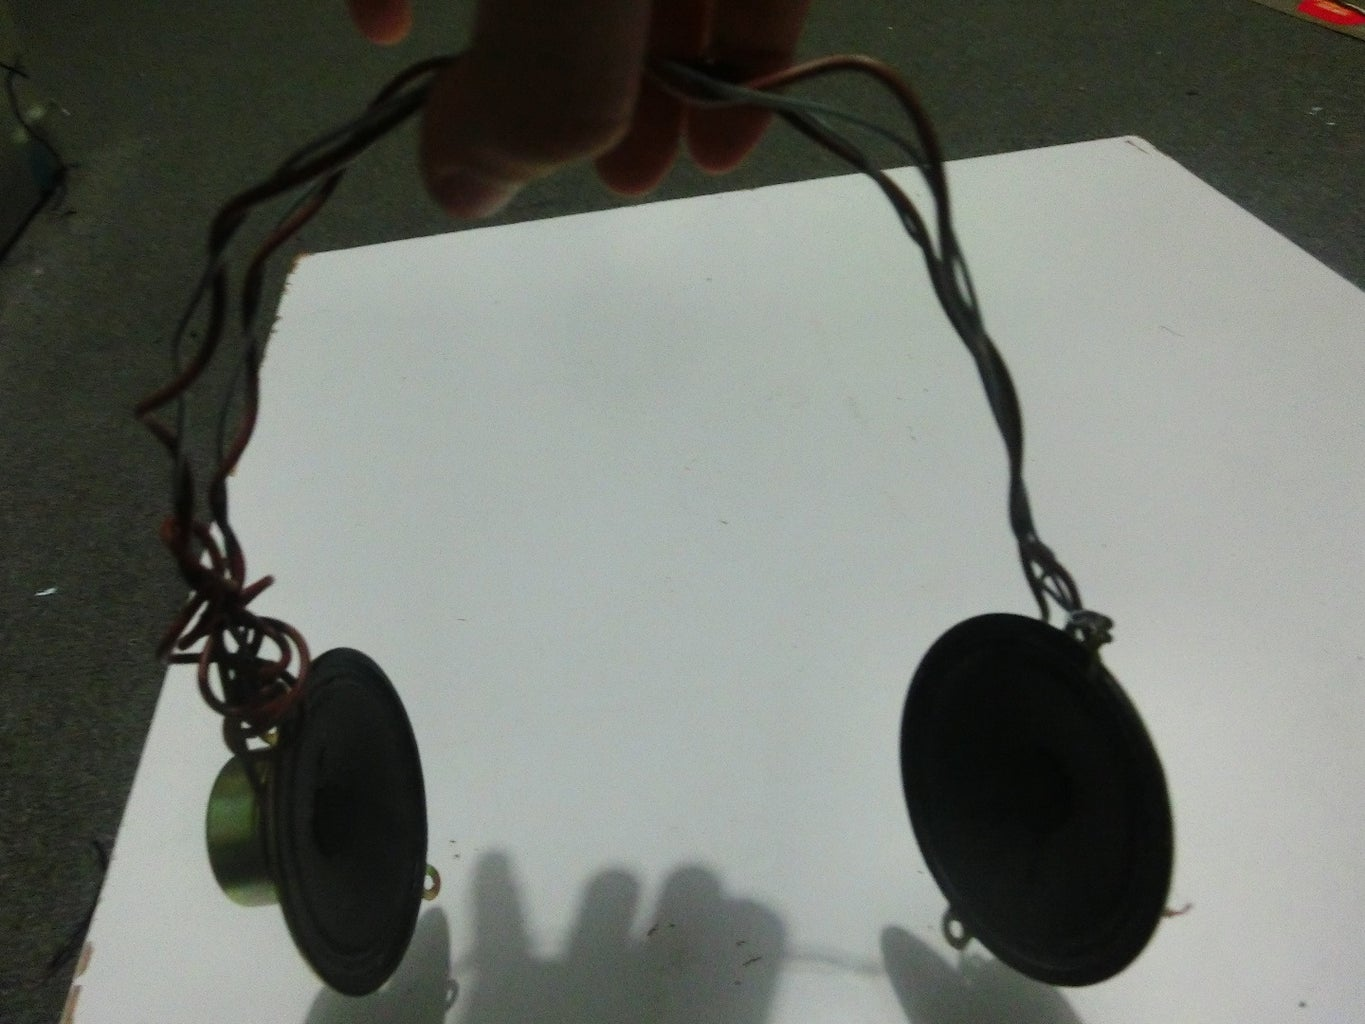 Attaching the Two Wires to the Speakers and the (long) Wire to the Speakers.